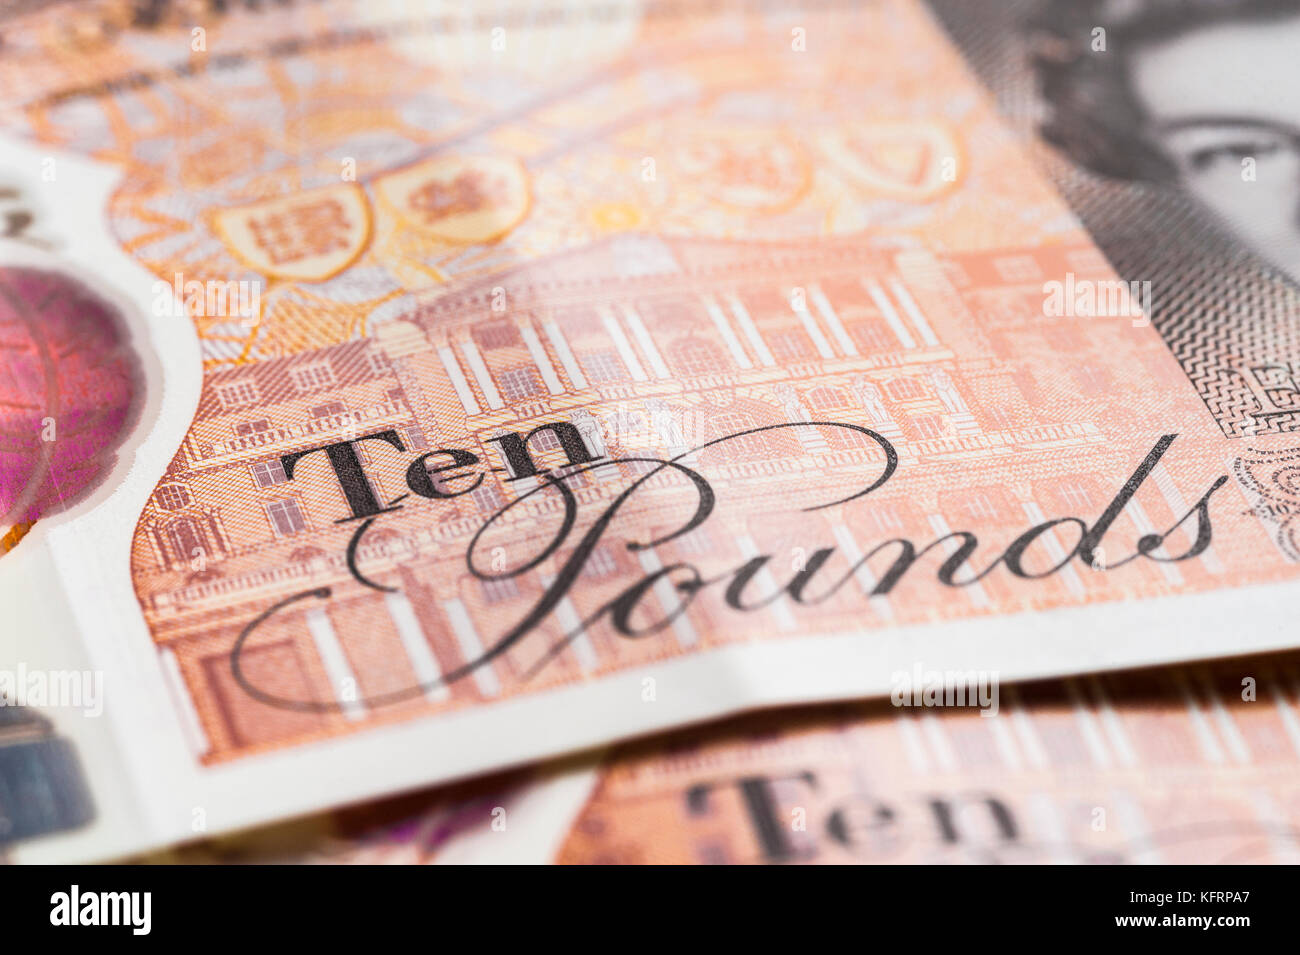 LONDON, ENGLAND – OCTOBER, 24: Closeup of the new British ten-pound note, featuring a portrait of Jane Austen. - Stock Image